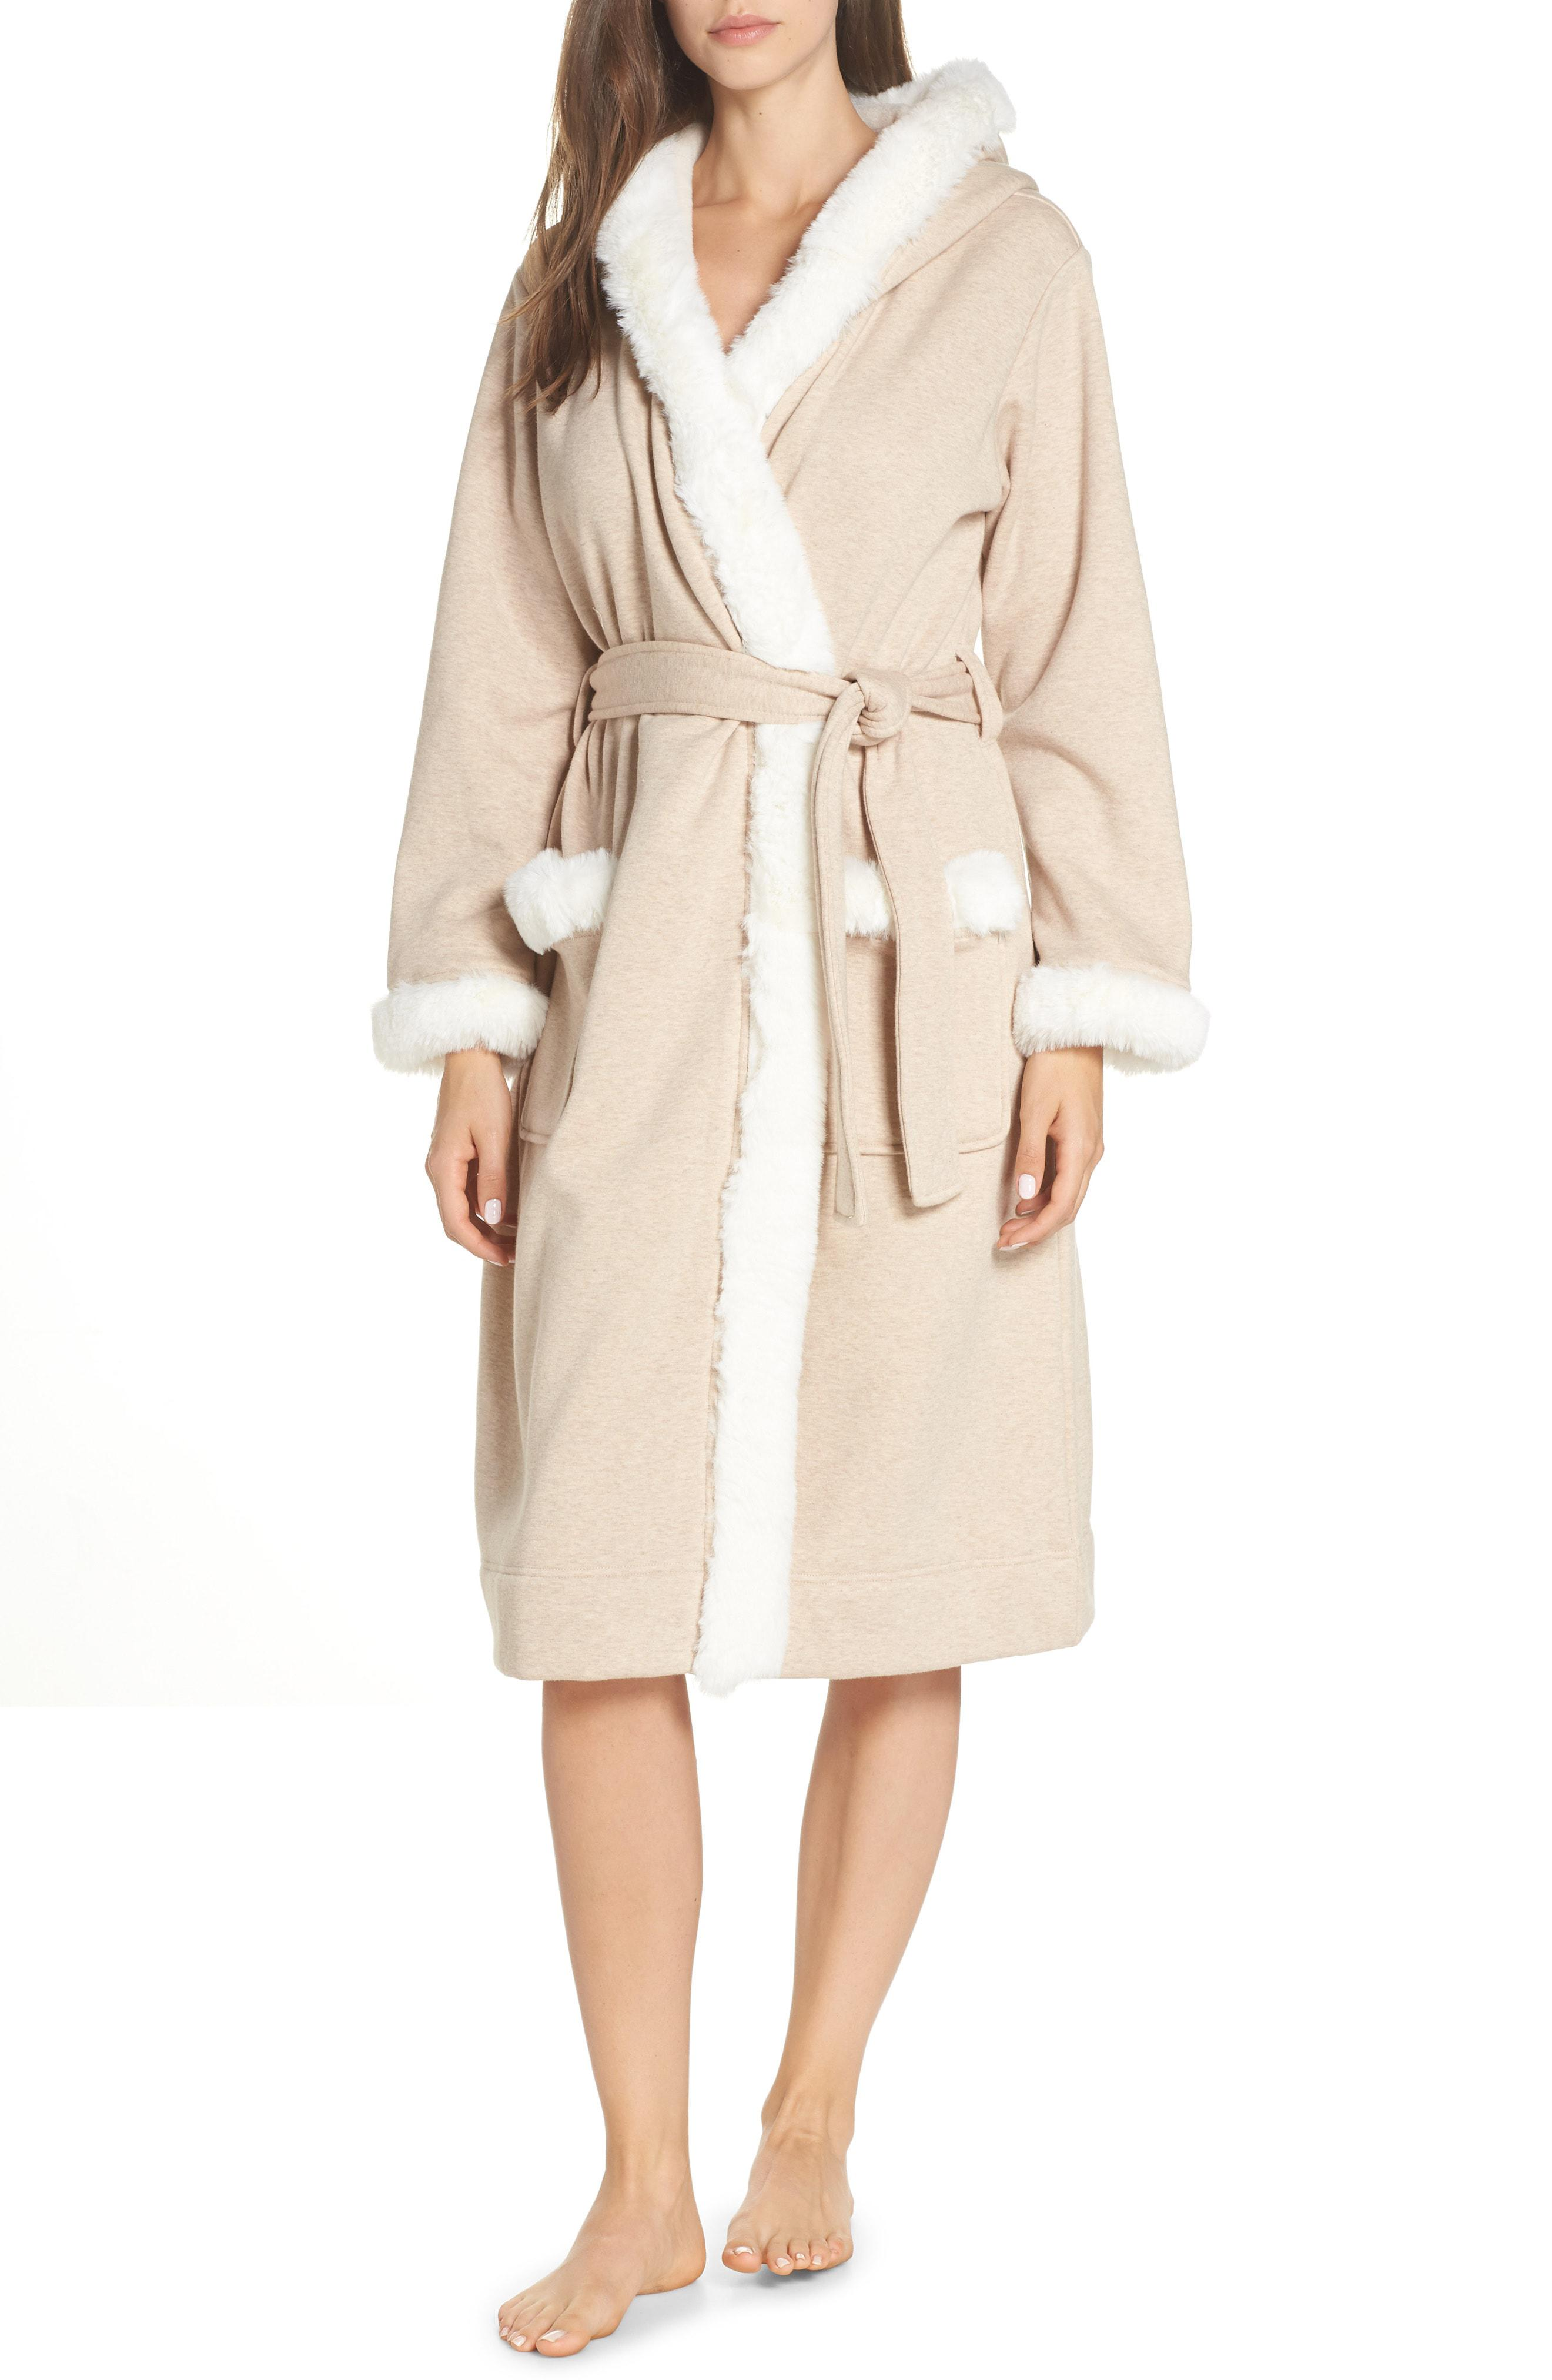 8847579bab Lyst - Ugg Ugg Duffield Ii Deluxe Faux Fur Trim Robe in Natural